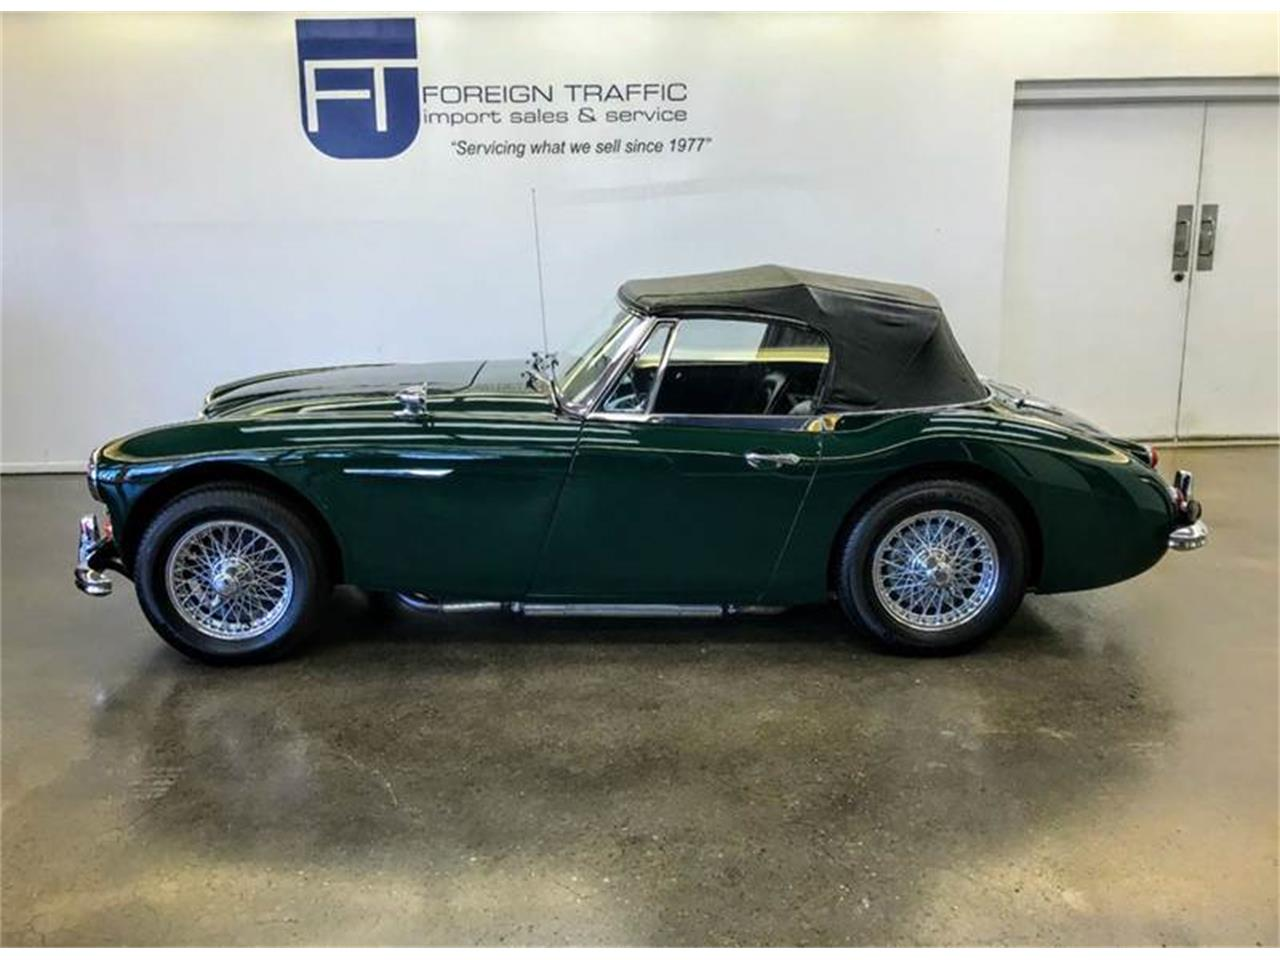 Large Picture of 1967 Austin-Healey 3000 Mark III Offered by Foreign Traffic Import Sales & Service - M74C